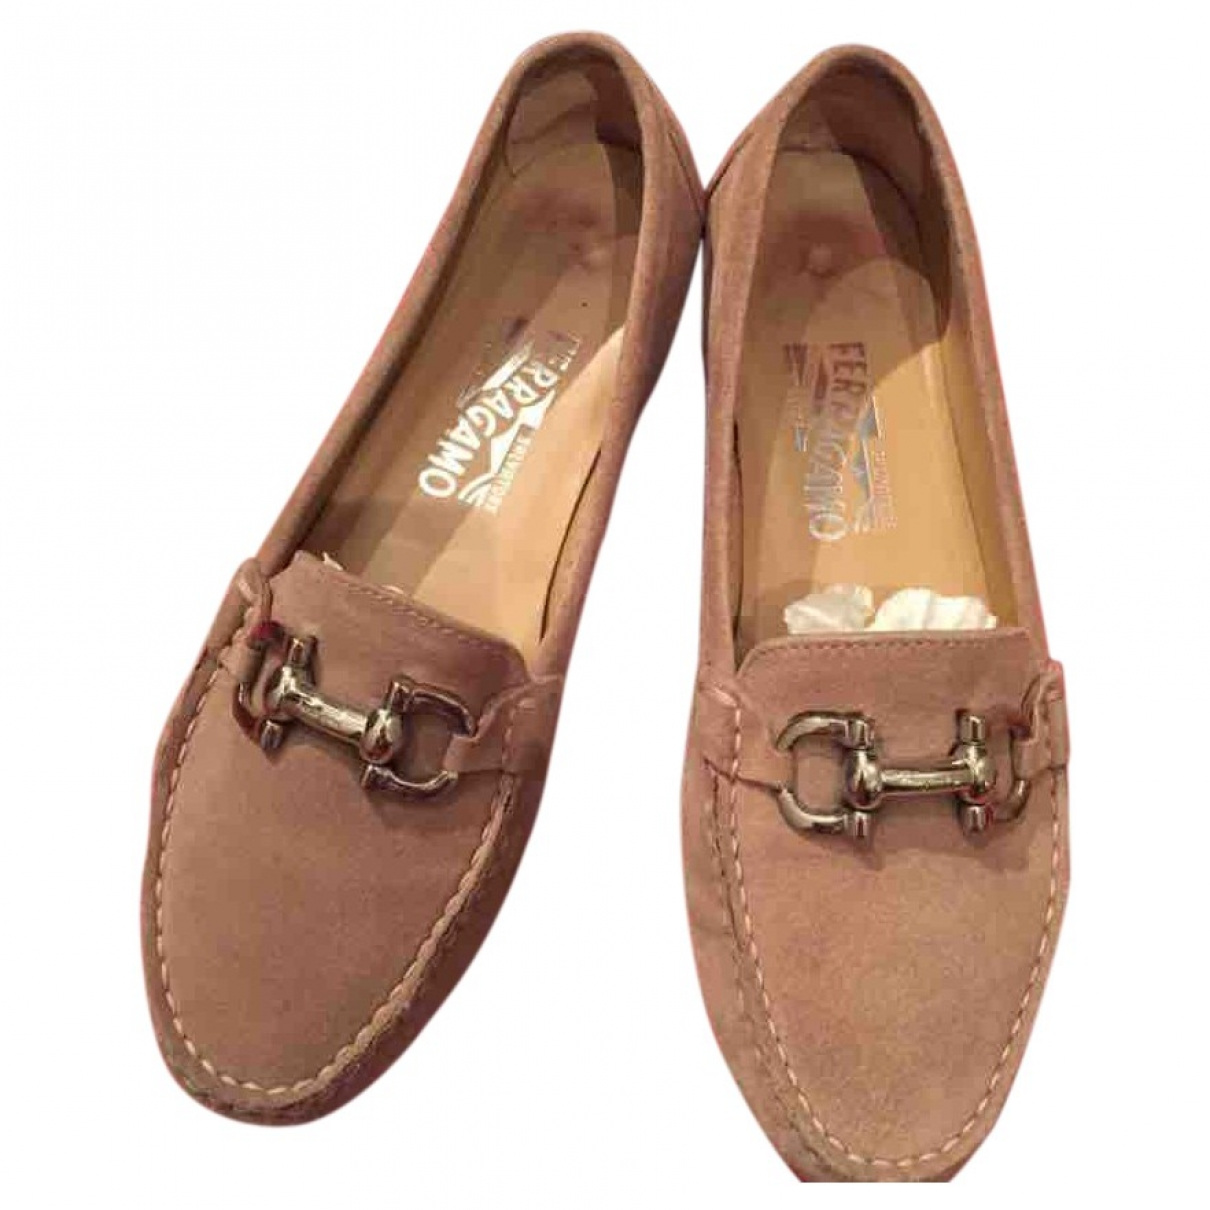 Salvatore Ferragamo \N Mokassins in  Beige Veloursleder